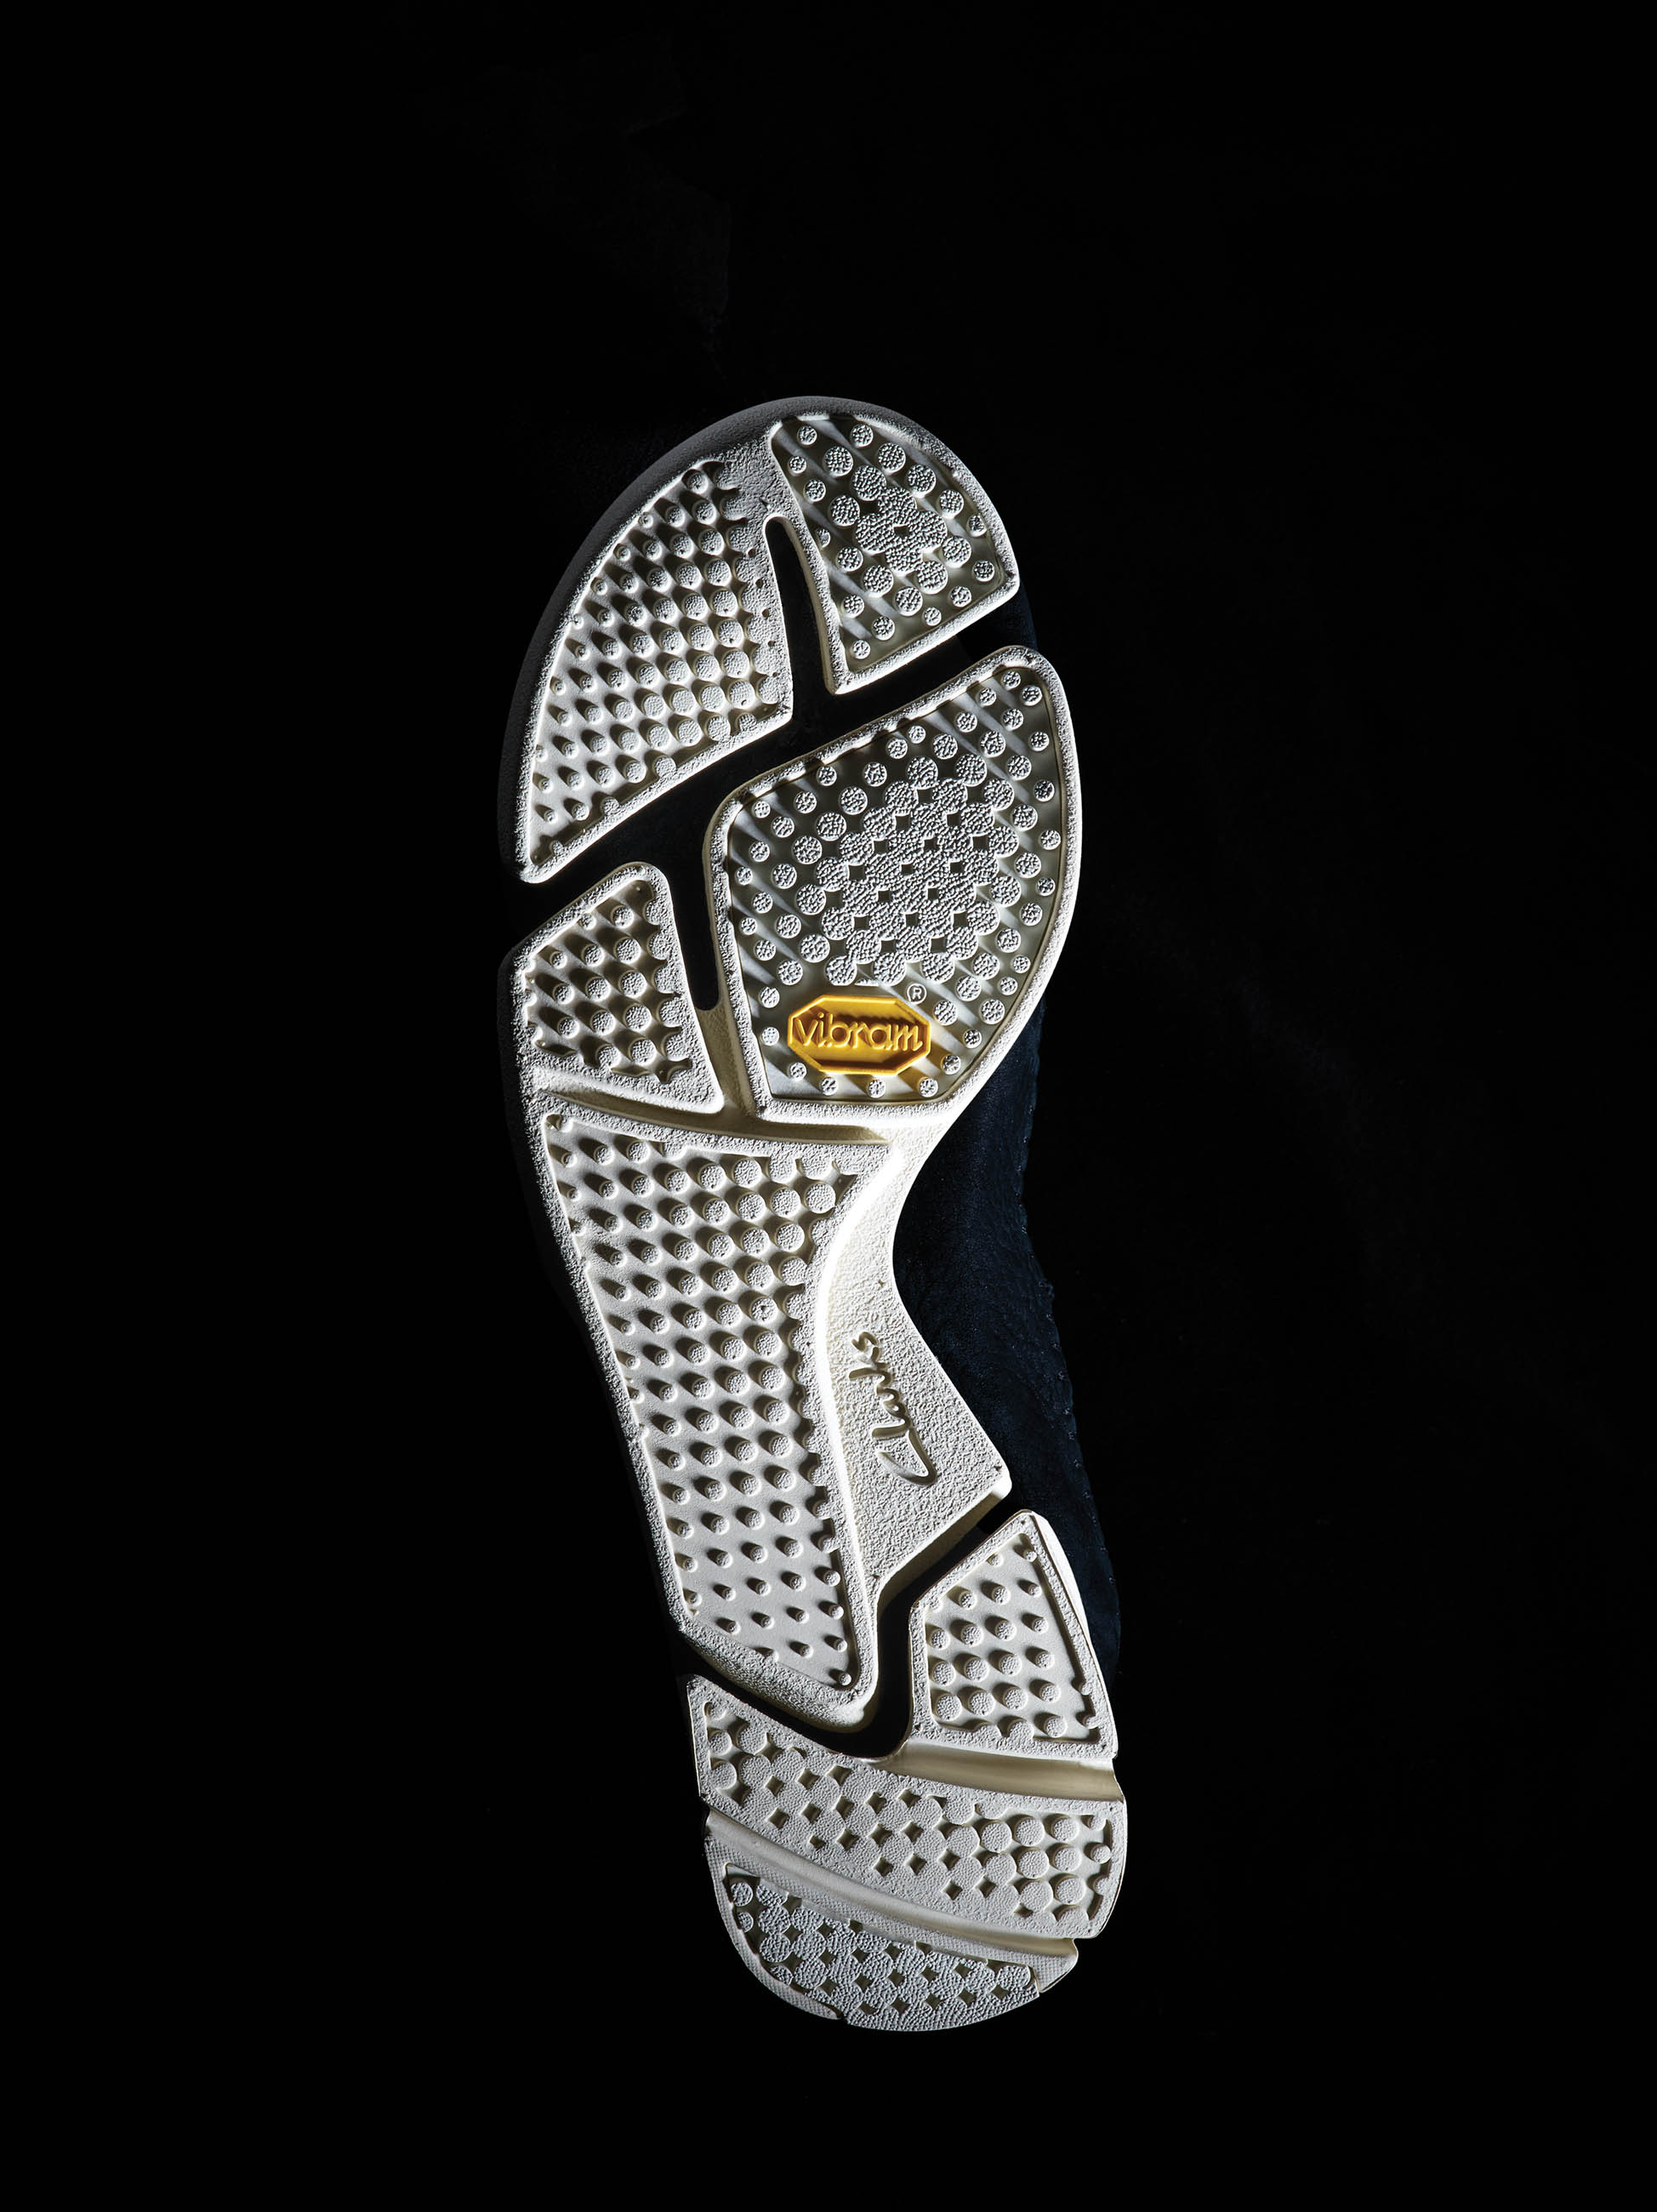 Clarks Introduces Trigenic, a New